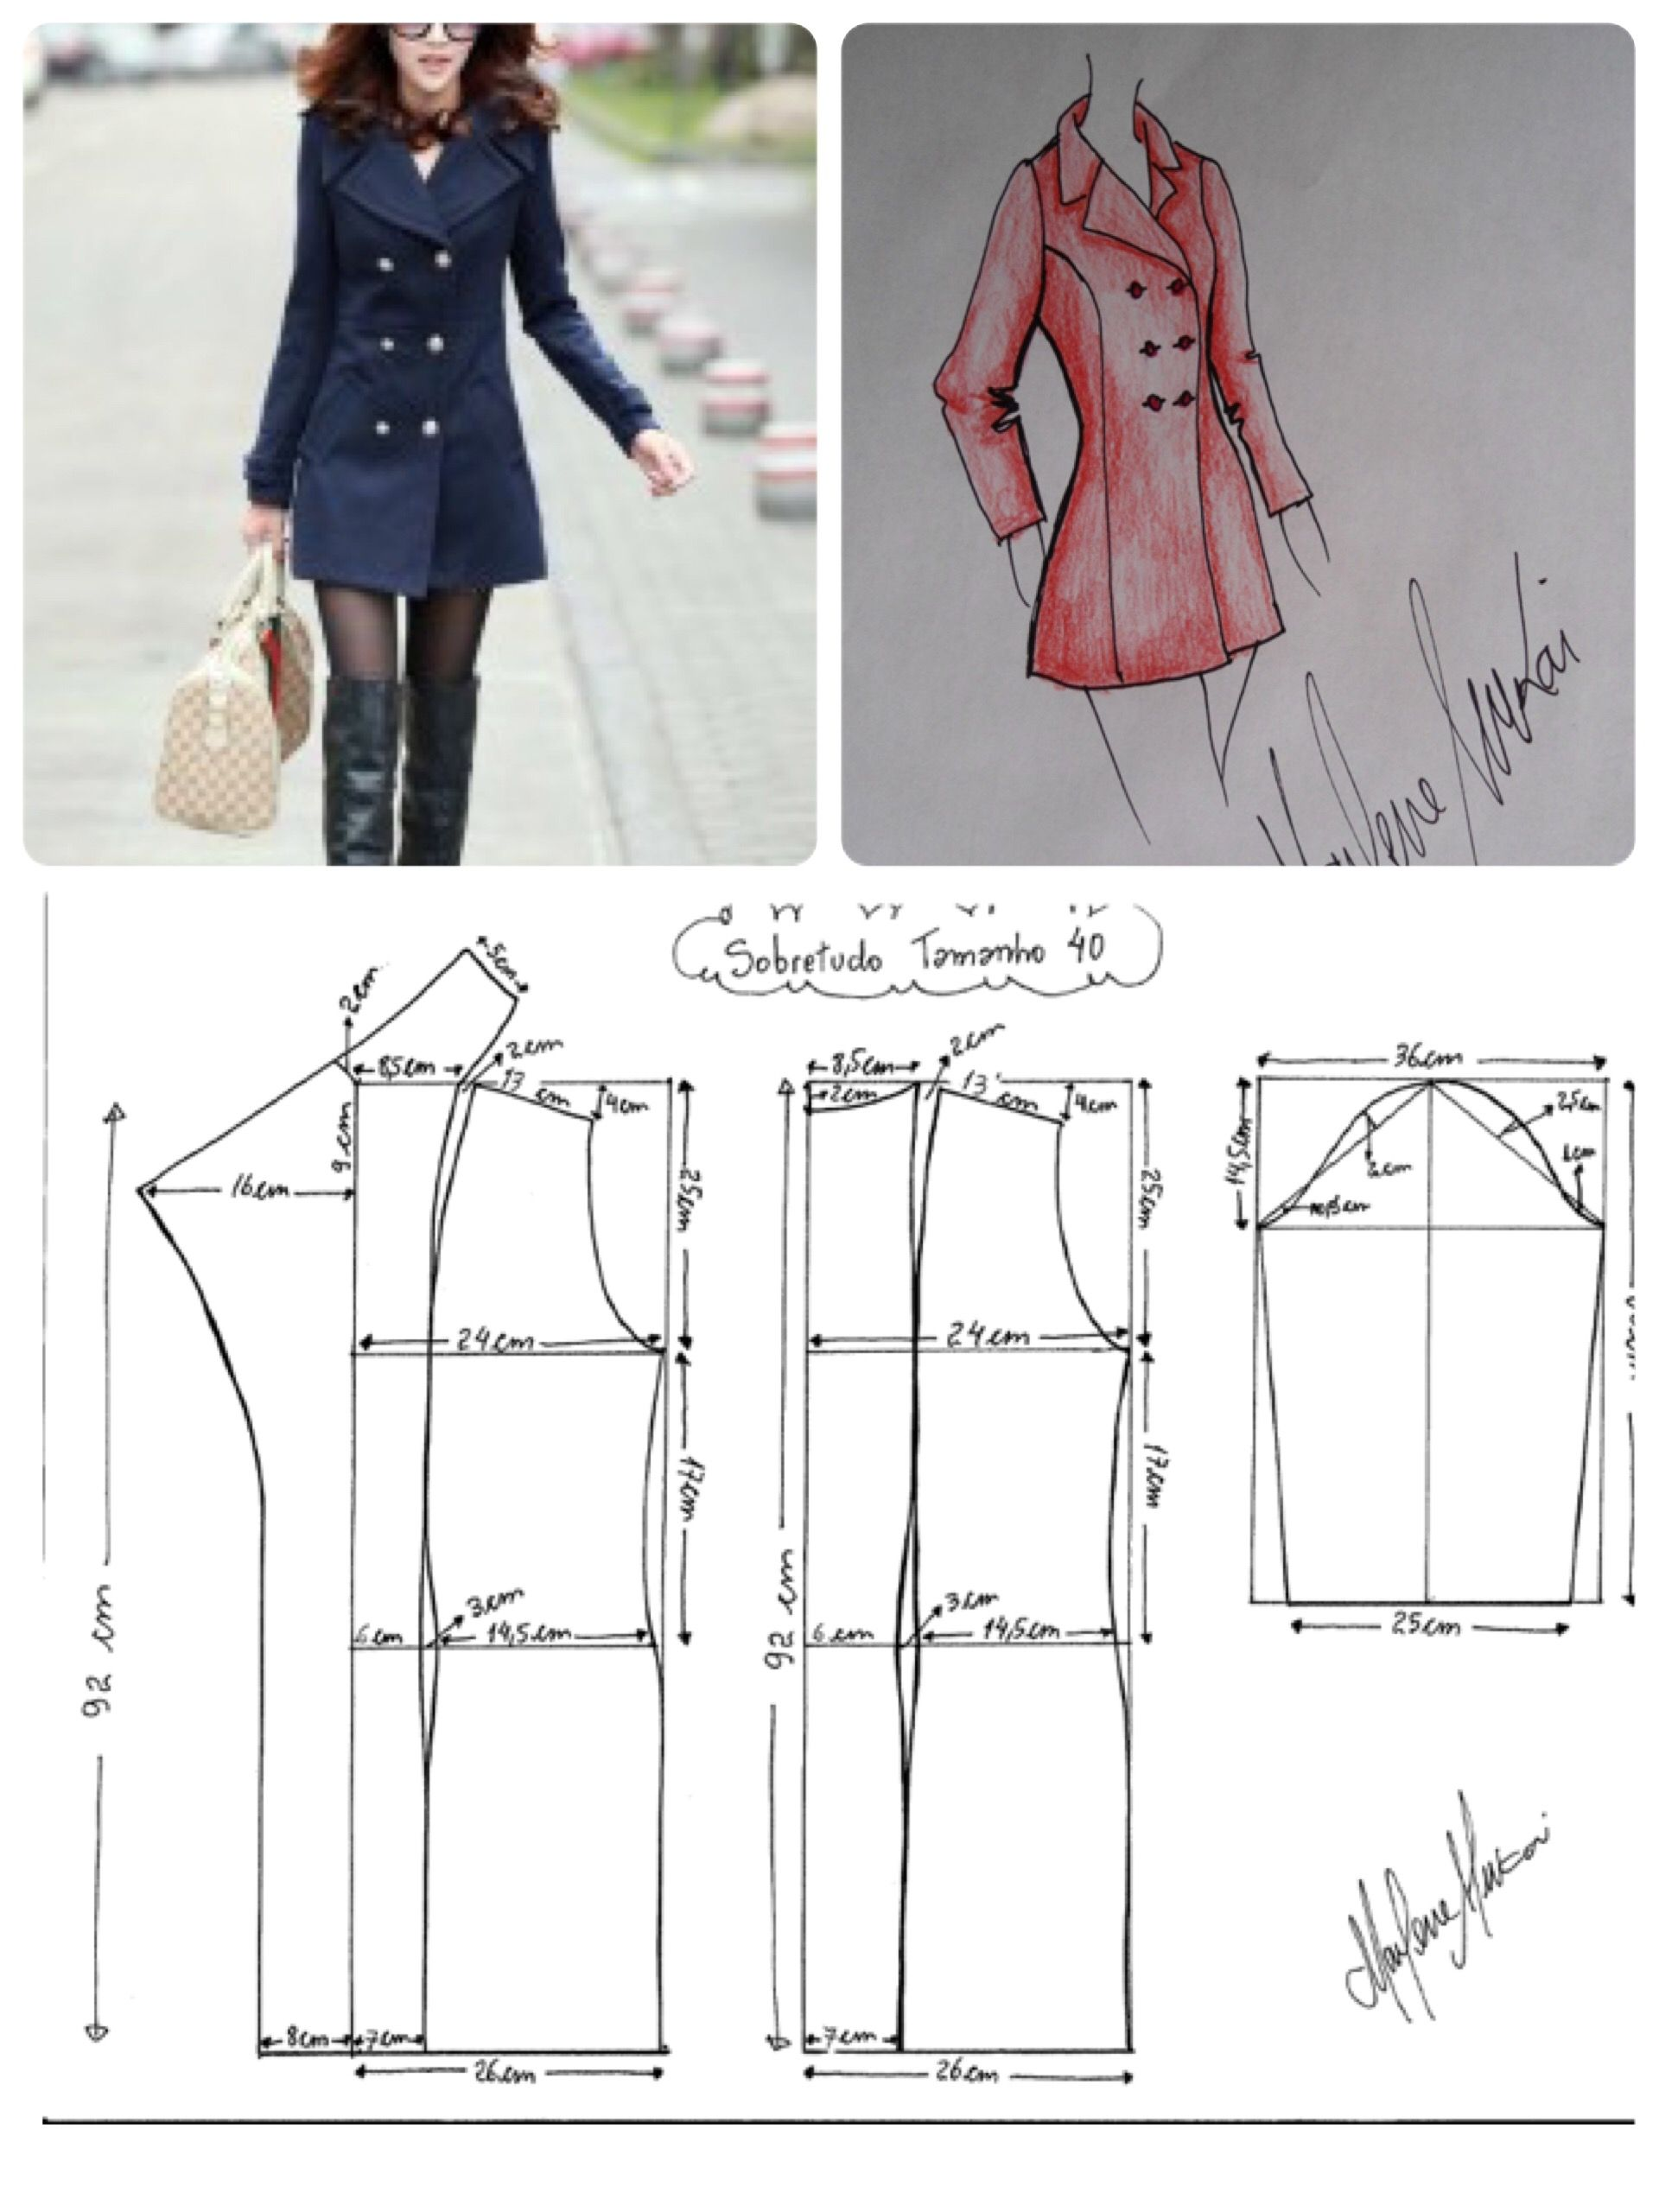 Trench talle 40 | Patterns | Pinterest | Costura, Molde y Patrones